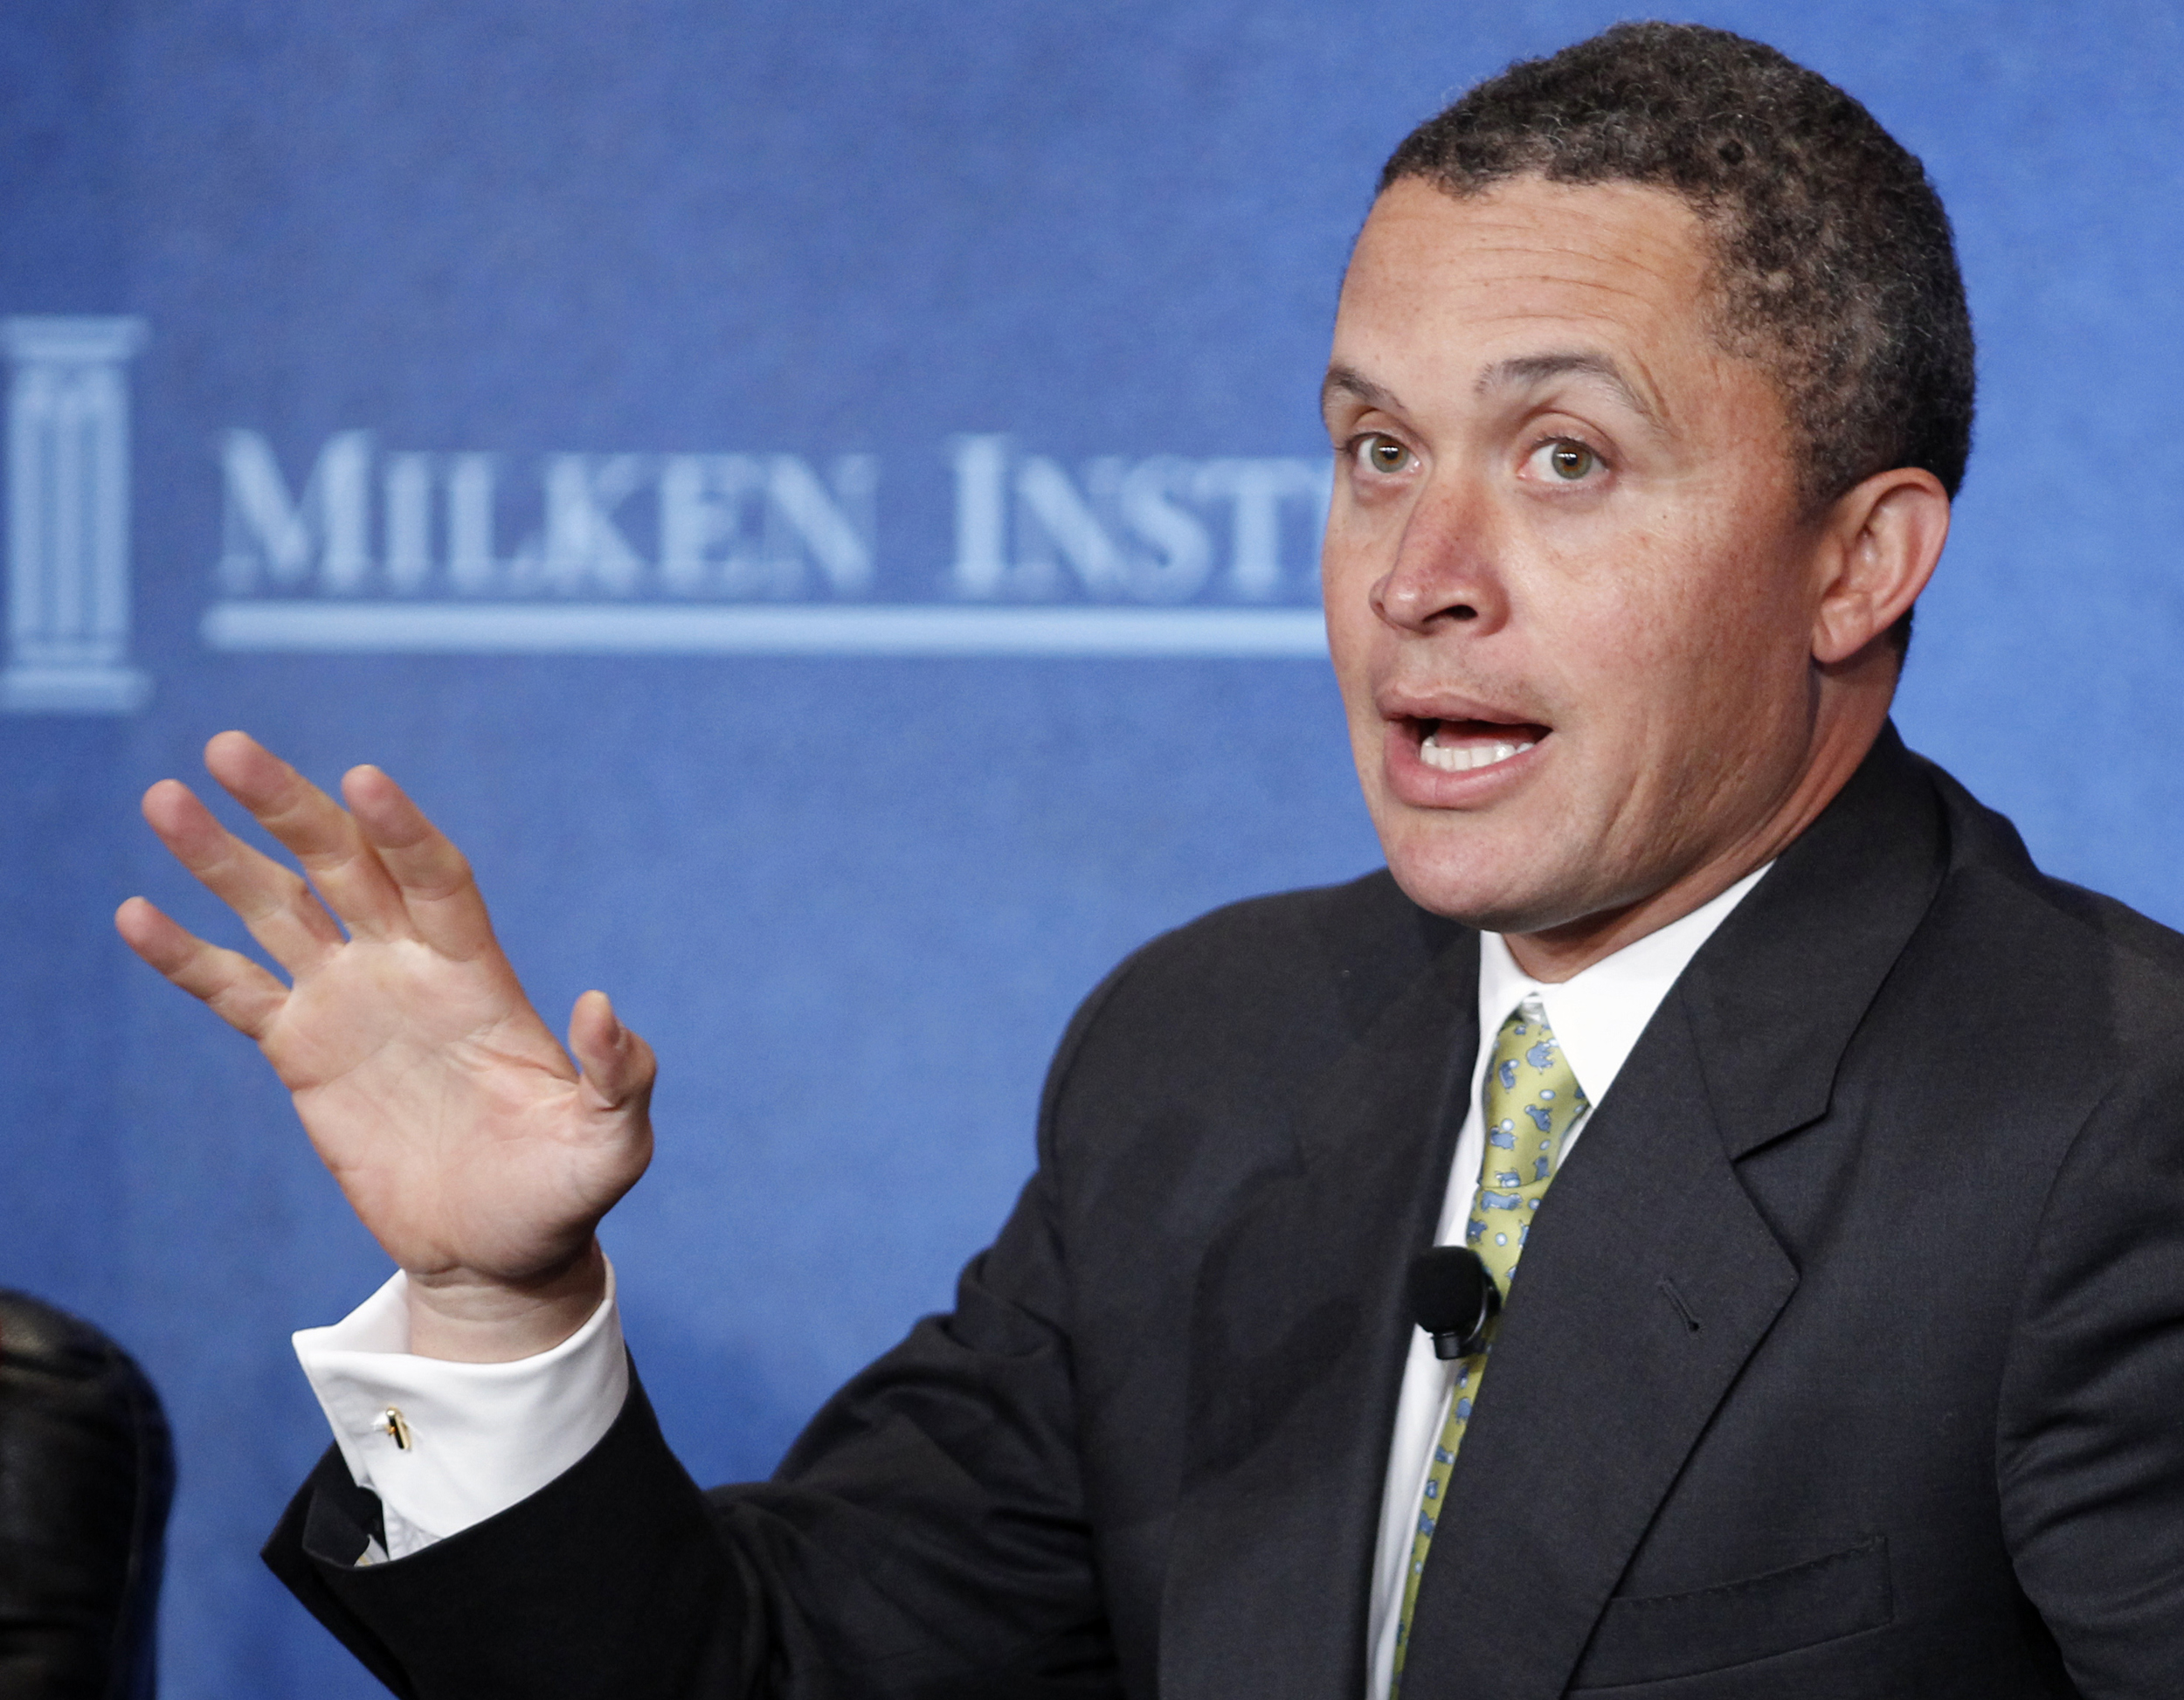 Harold Ford Jr. blasts misconduct claim that led to firing